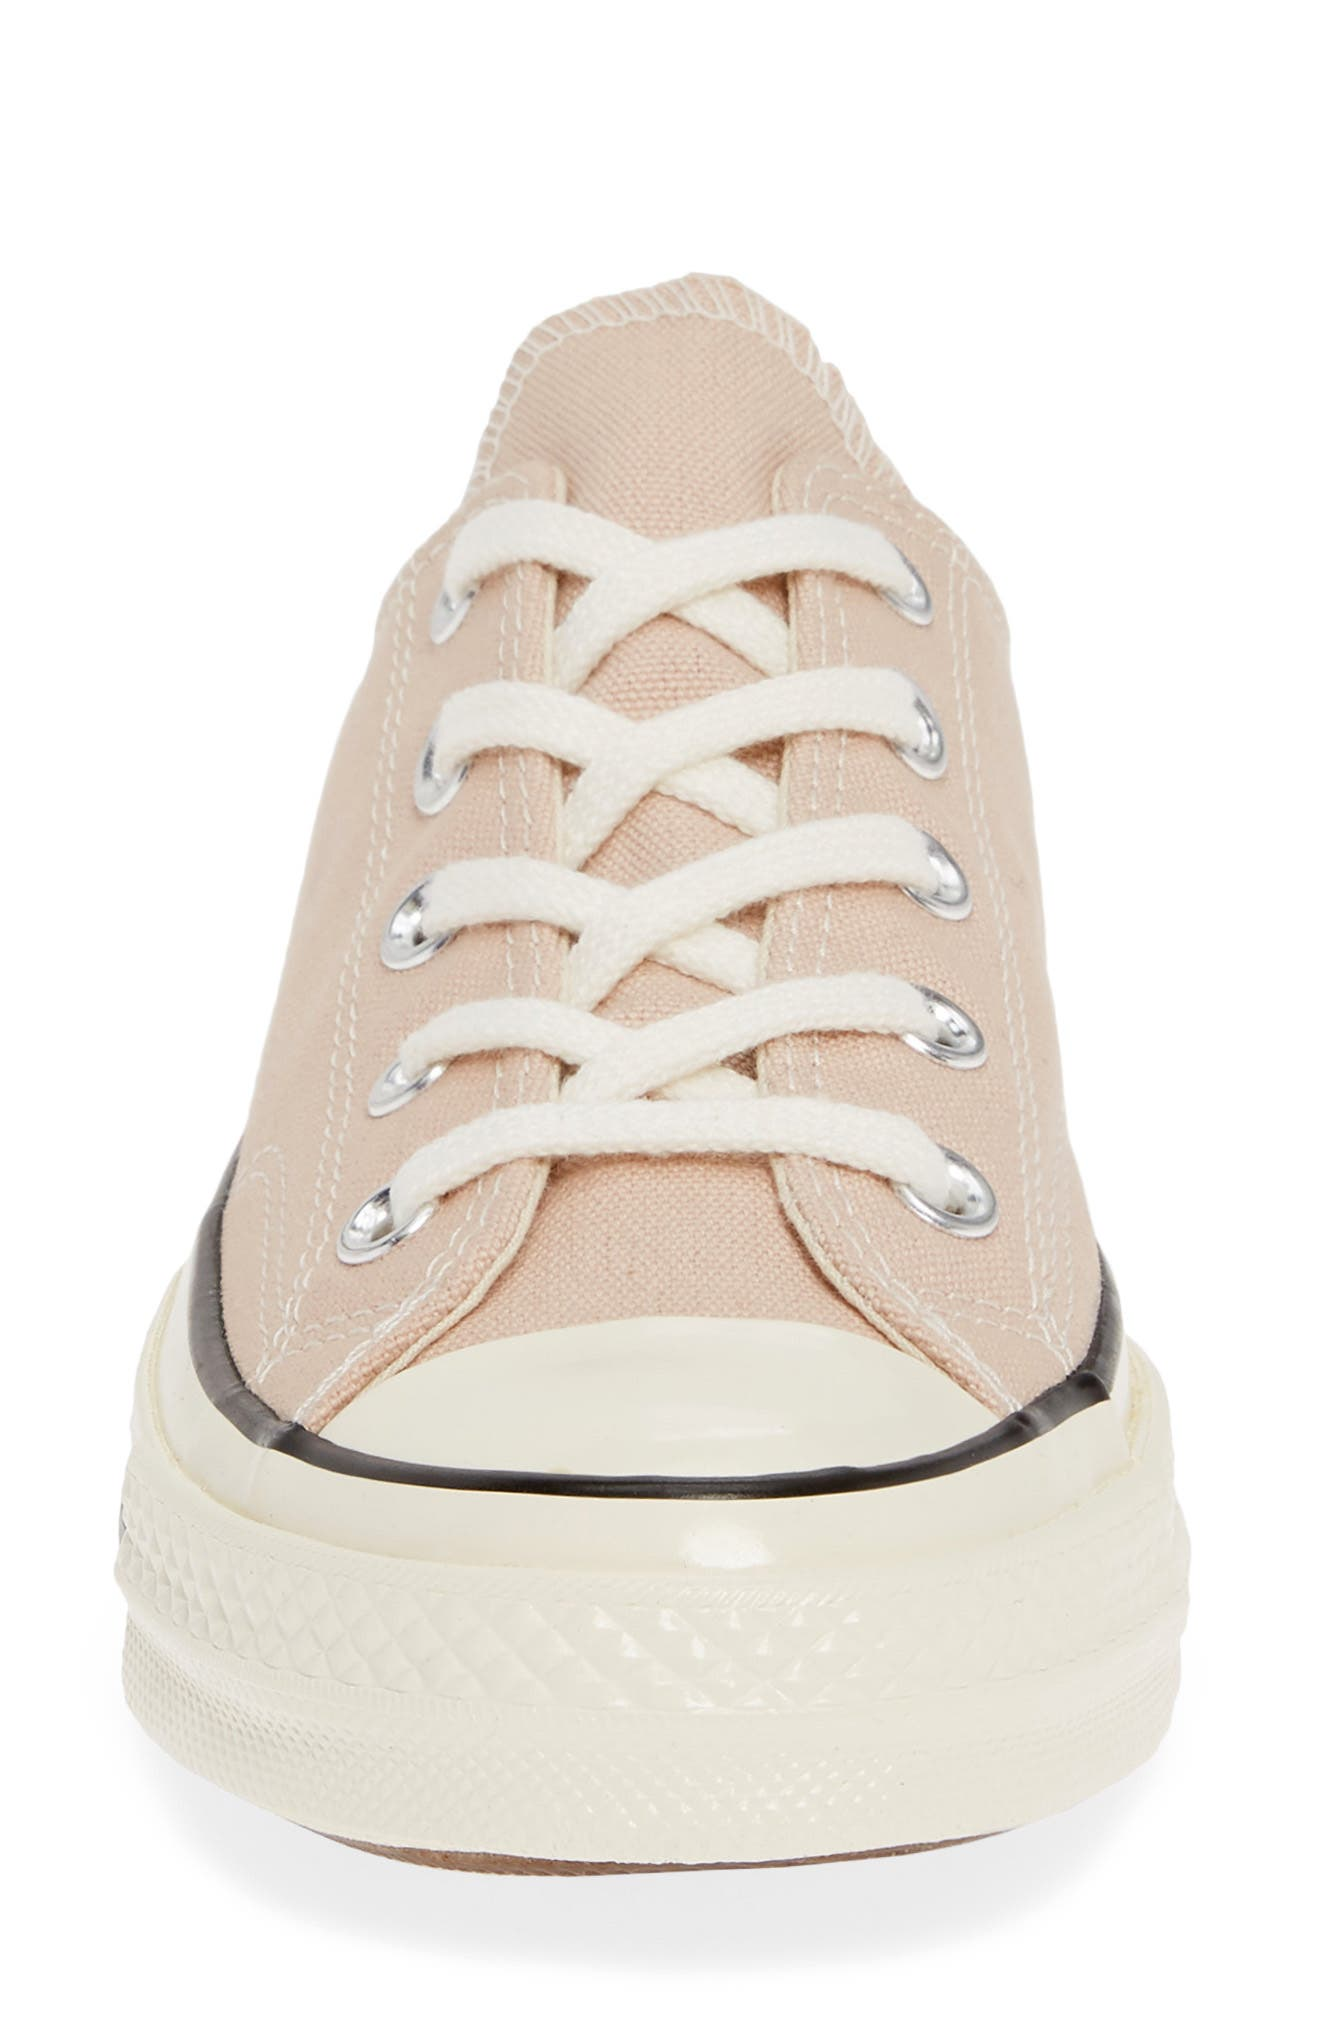 CONVERSE, Chuck Taylor<sup>®</sup> All Star<sup>®</sup> Chuck 70 Ox Sneaker, Alternate thumbnail 4, color, PARTICLE BEIGE/ BLACK/ EGRET